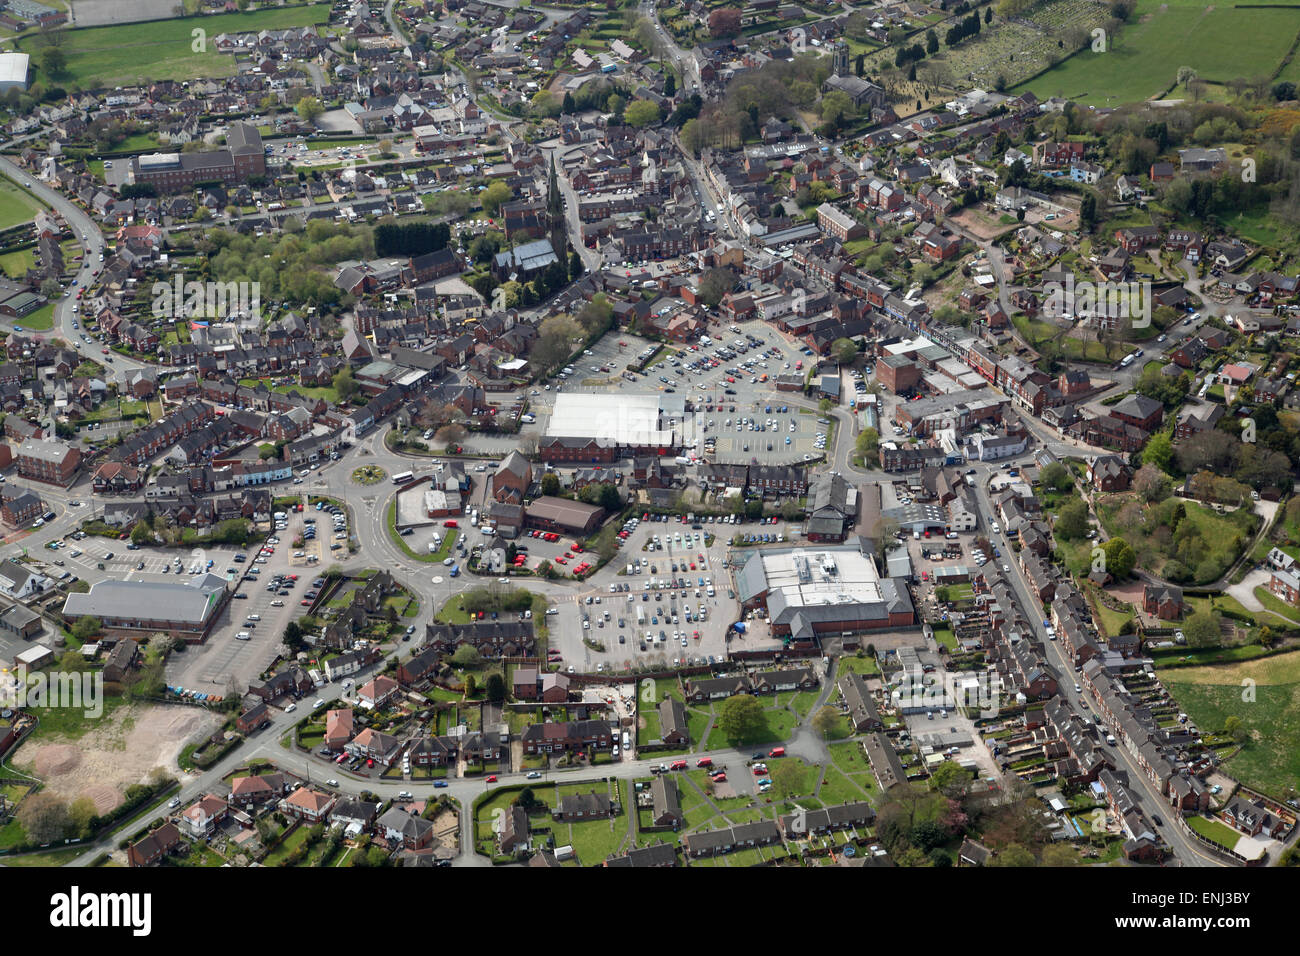 aerial view of Cheadle in Staffordshire, UK - Stock Image